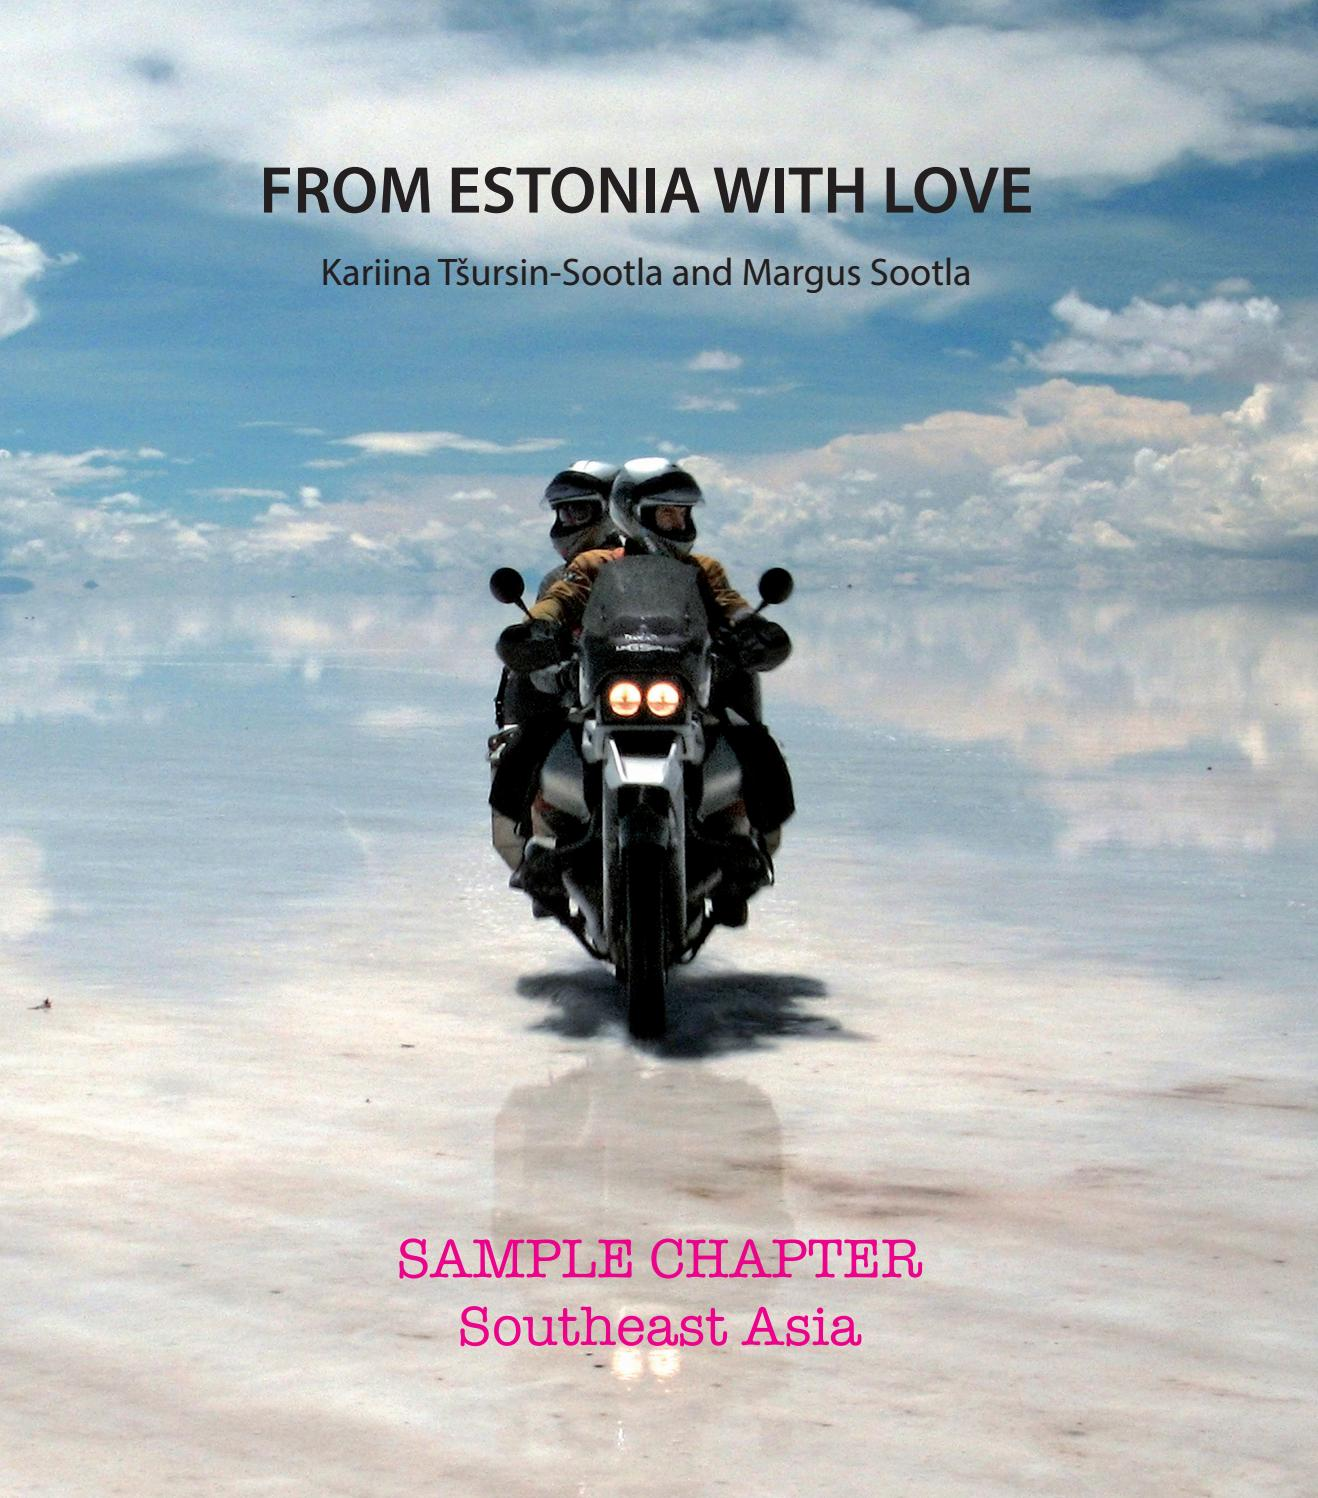 From Estonia With Love - Southeast Asia by Emajõe Disain - issuu